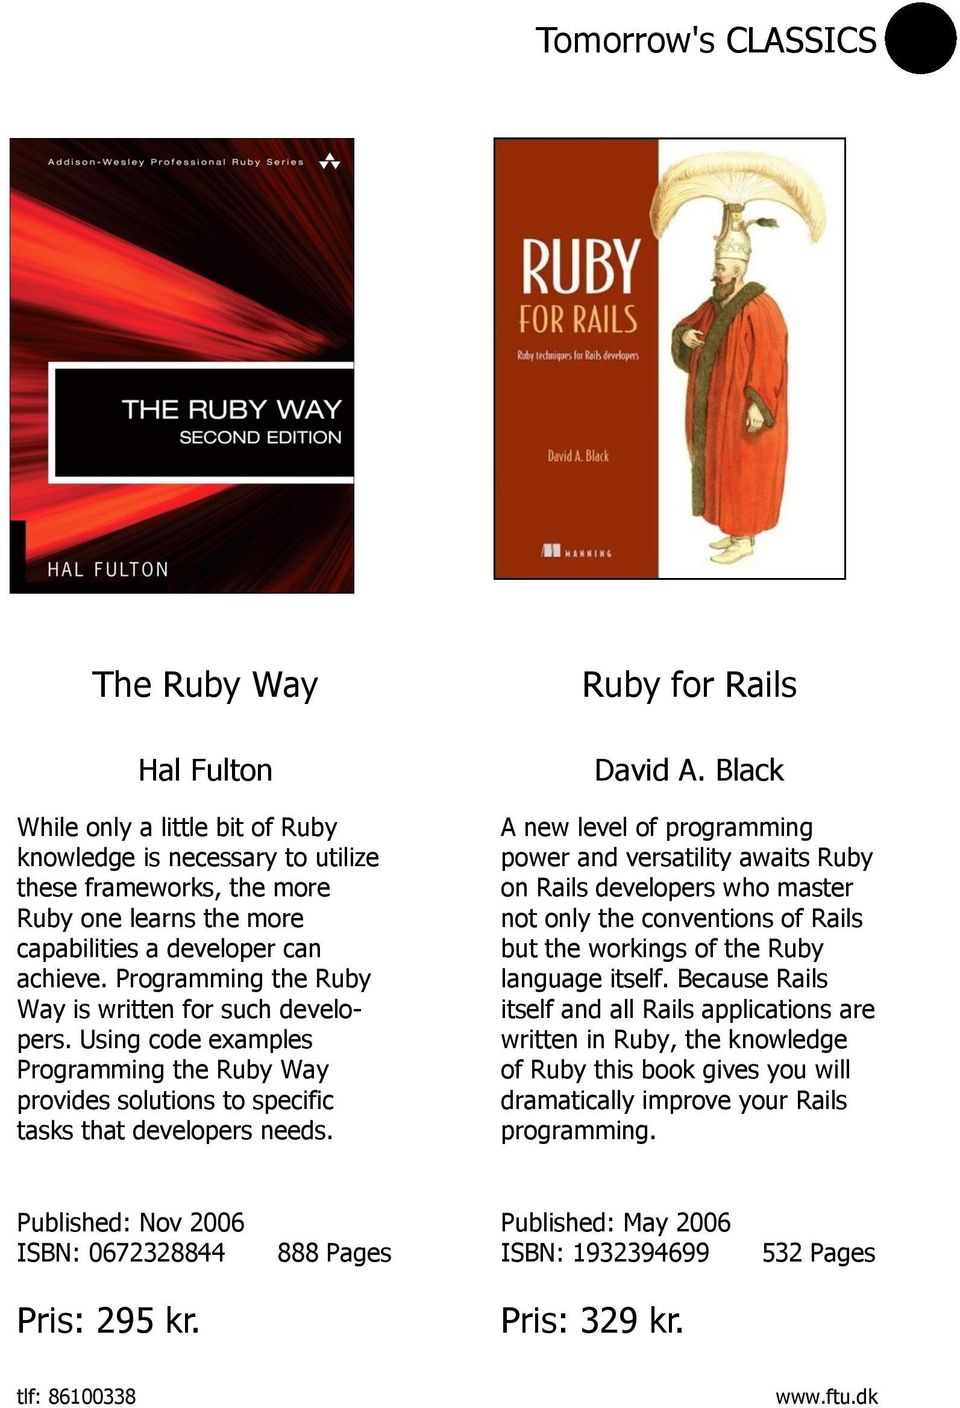 Black A new level of programming power and versatility awaits Ruby on Rails developers who master not only the conventions of Rails but the workings of the Ruby language itself.